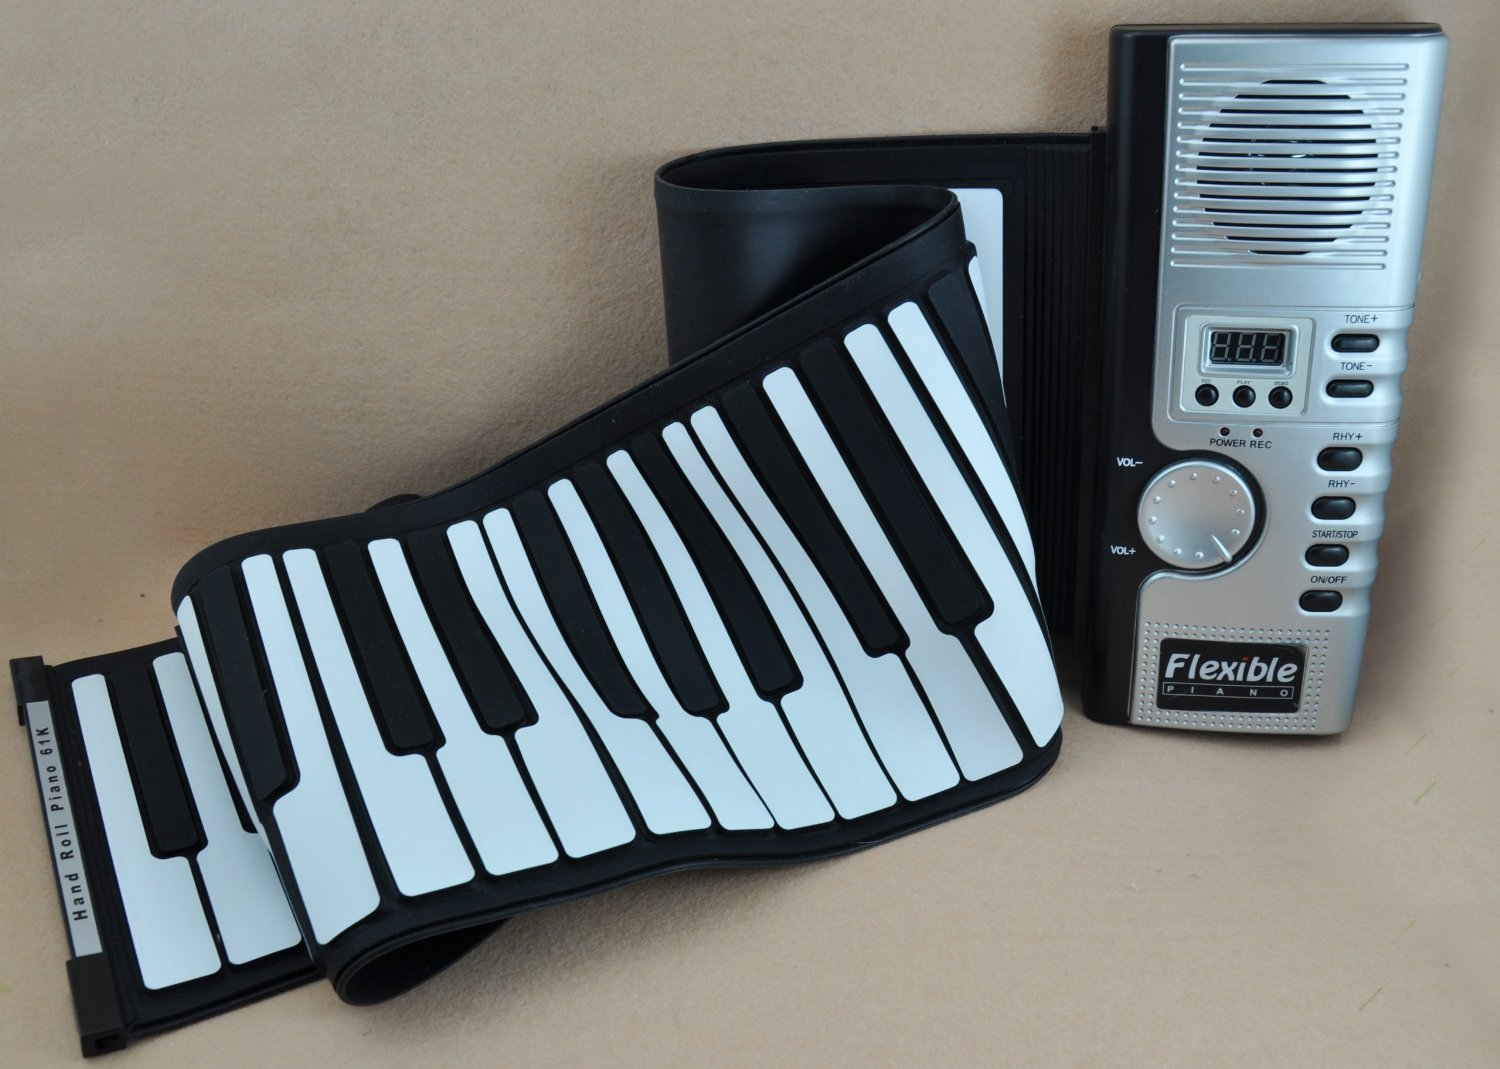 JouerNow RUP001 61 Thickened-Keys Roll Up Piano, Multifunctional Electronic Digital Synthesizer, Battery-Operated, with Built-in Speaker/Headphone Output